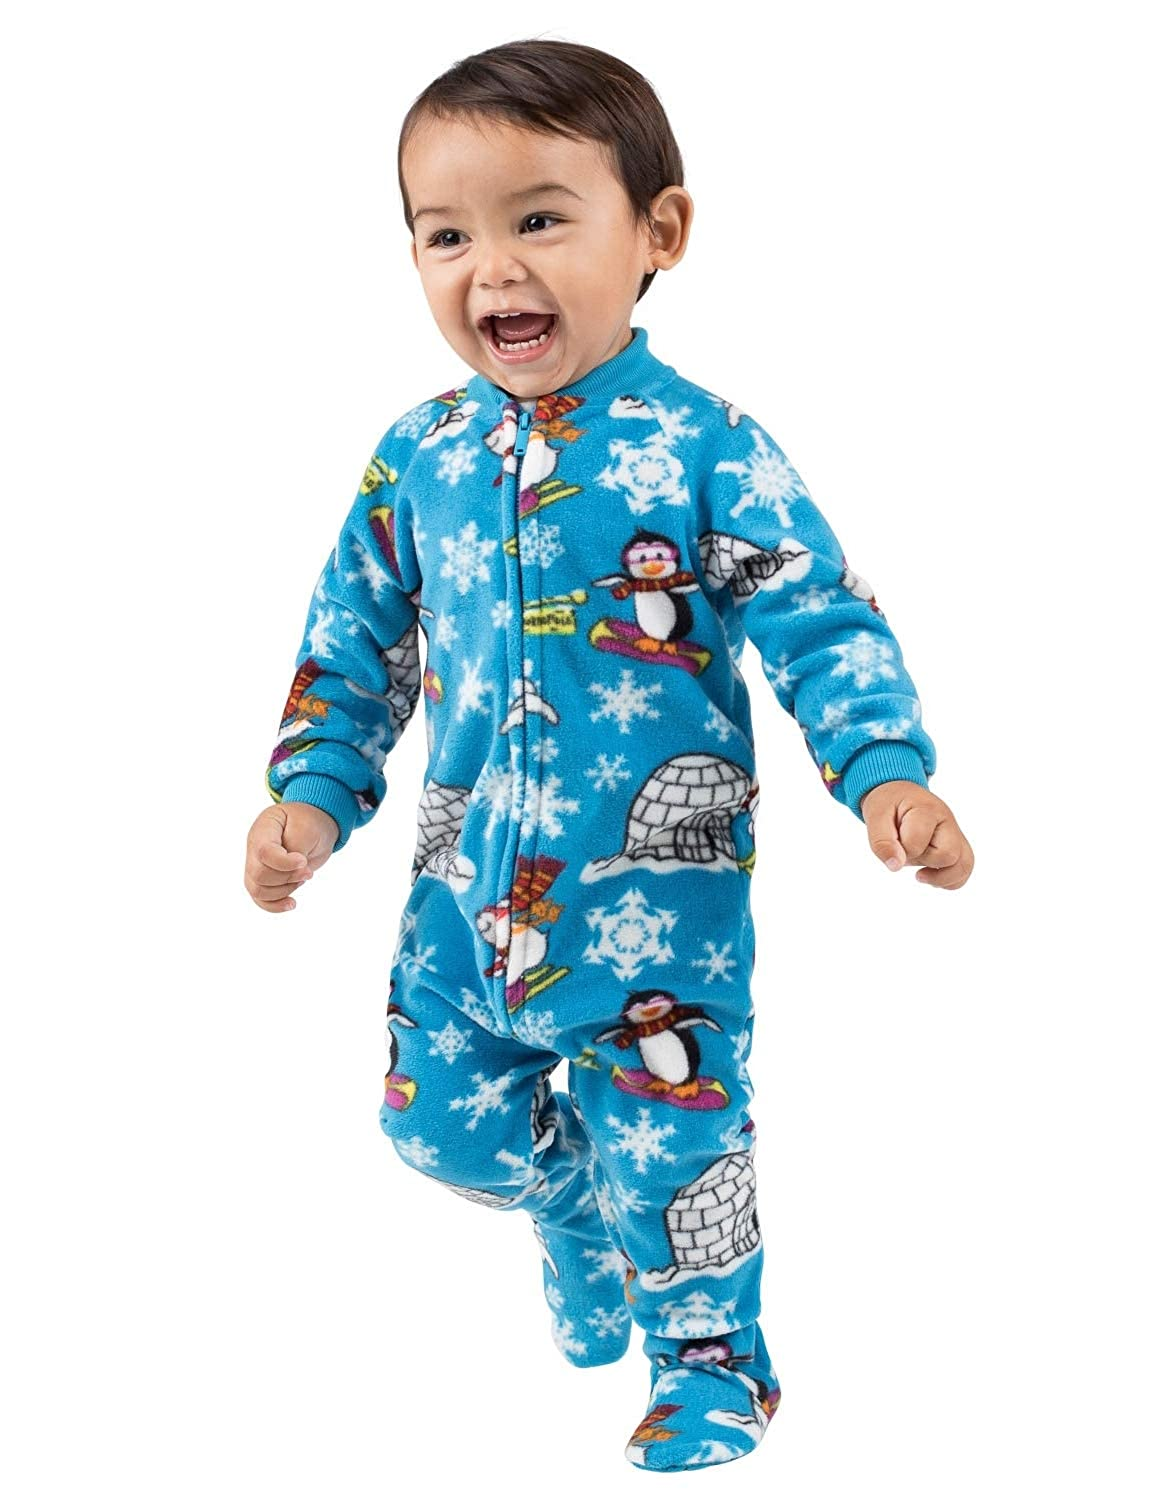 売り切れ必至! Footed 0 Pajamas SLEEPWEAR ユニセックスキッズ Footed Small (Fits B0099RRQAW 0 - 3mos.) B0099RRQAW, カミヤクチョウ:50356c8f --- a0267596.xsph.ru